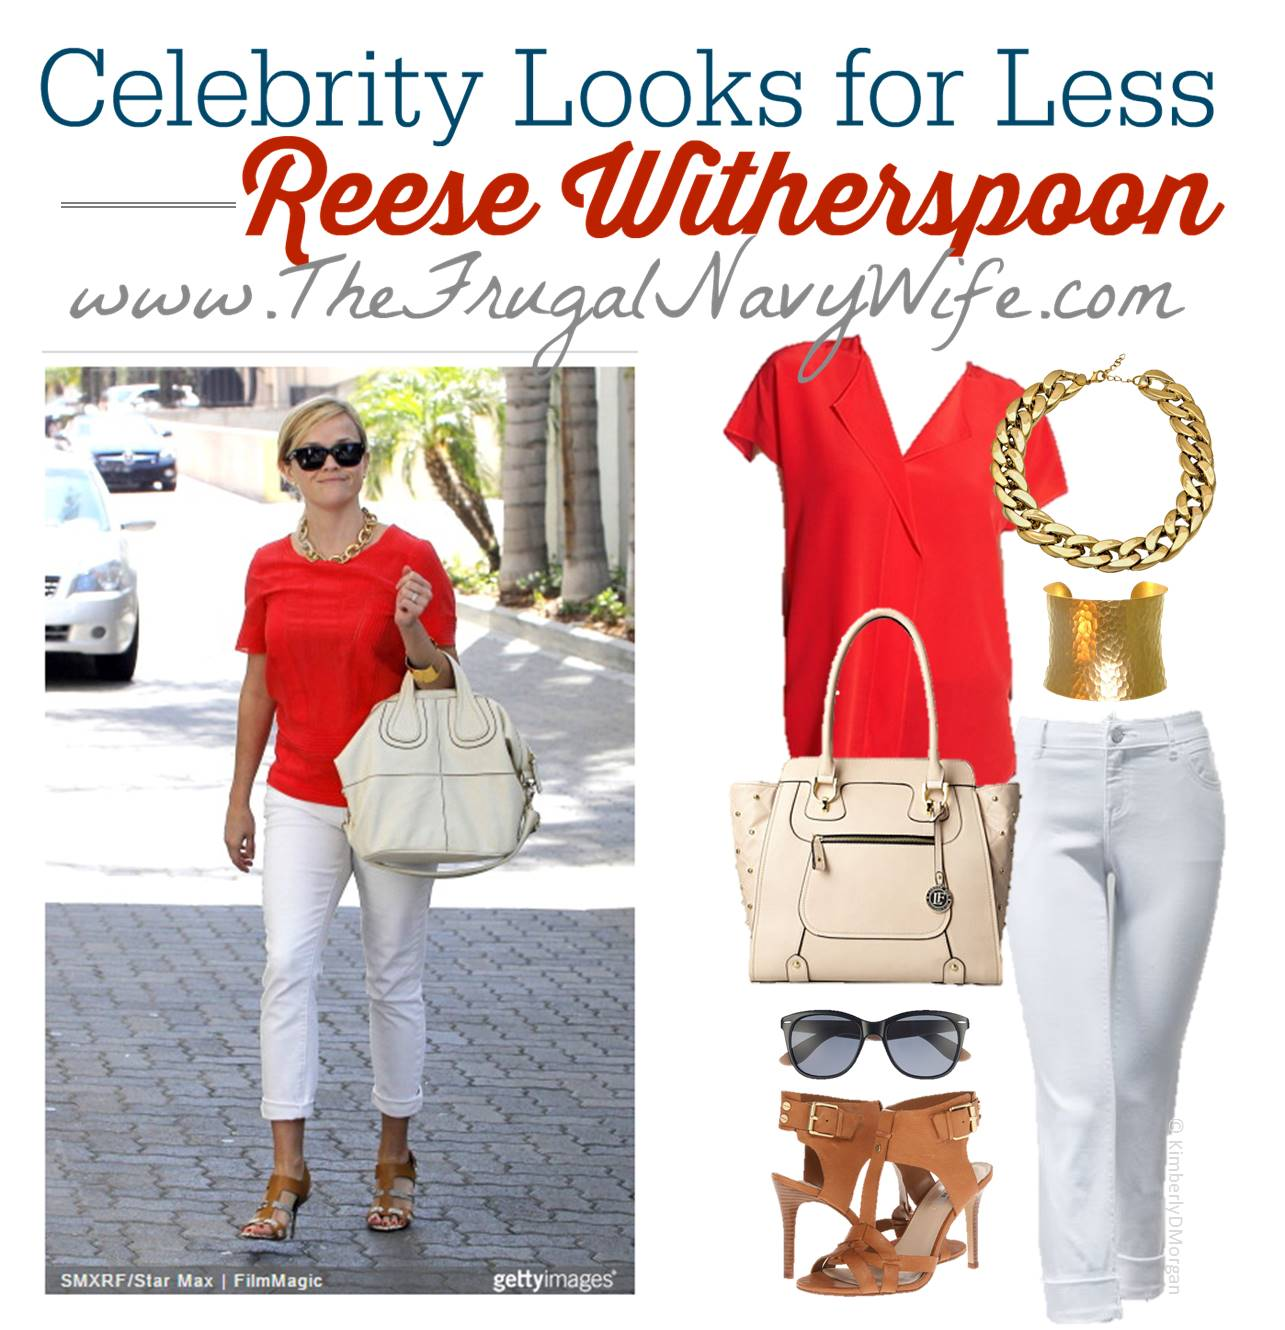 Fashion Friday Celebrity Looks For Less Reese Witherspoon